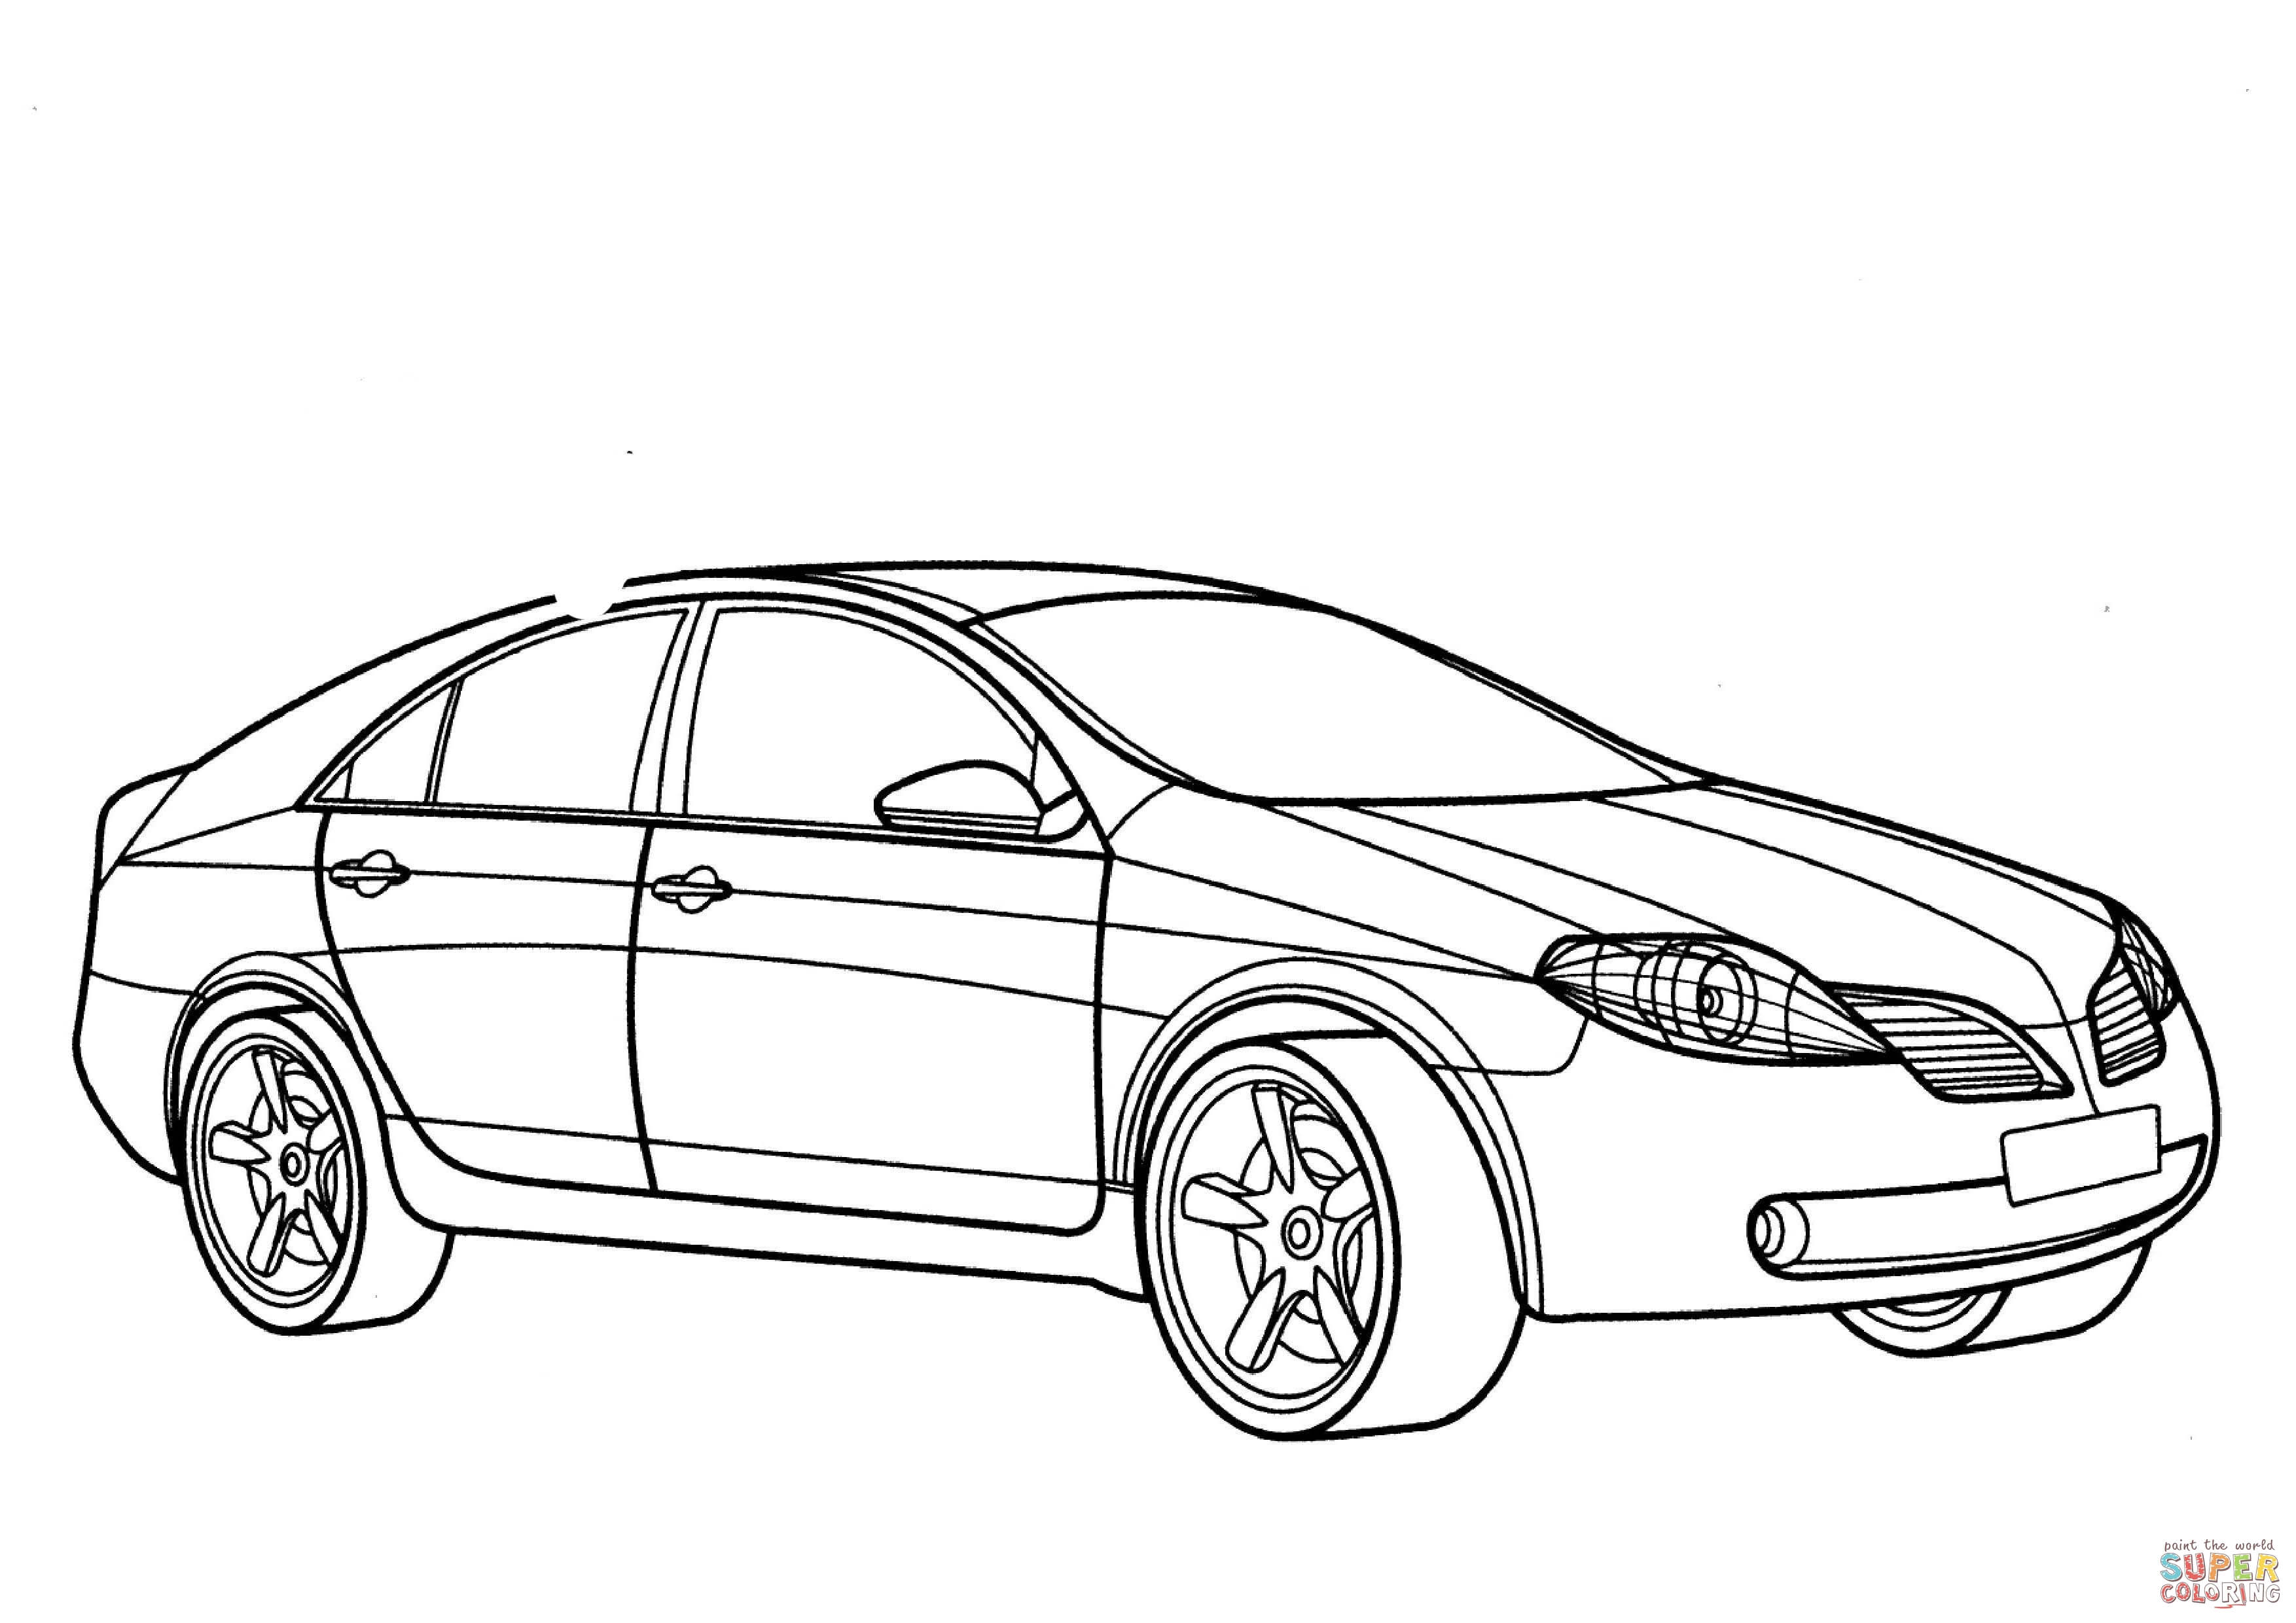 Gtr Logo Coloring Coloring Pages